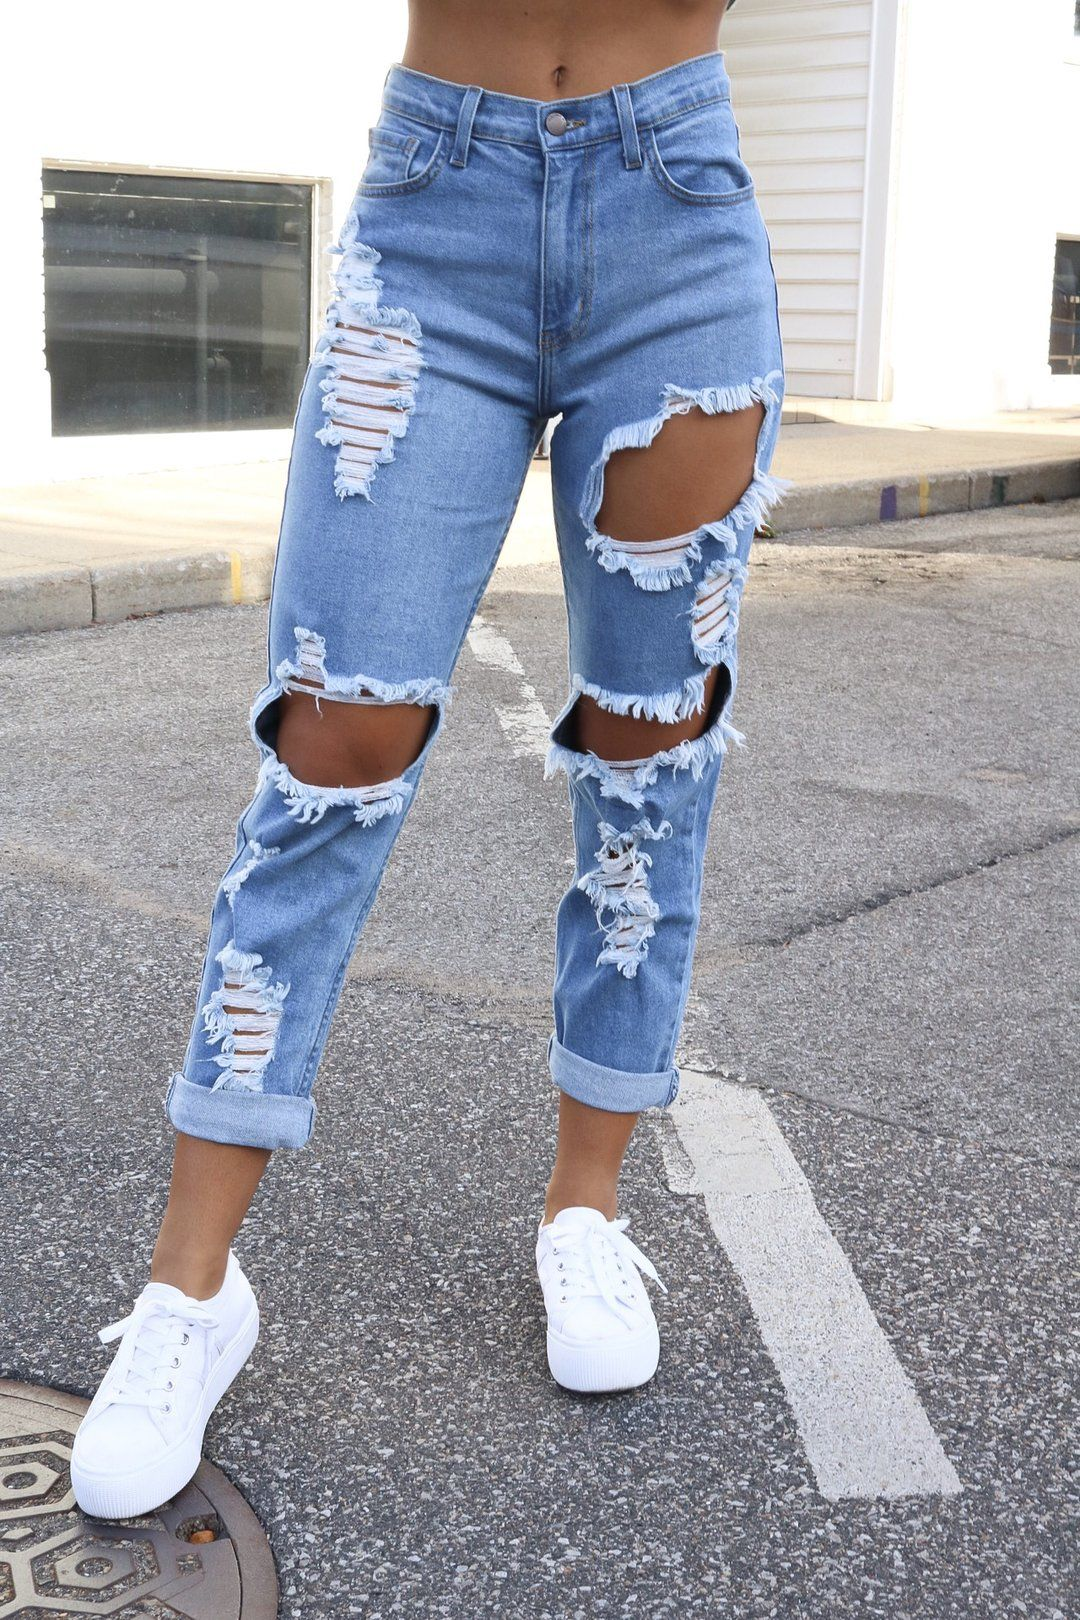 Jeans Outfit For Women Casual Wear Nylon Pants Straight Fit Silk Pants Long Pants Casual Boy Outfits